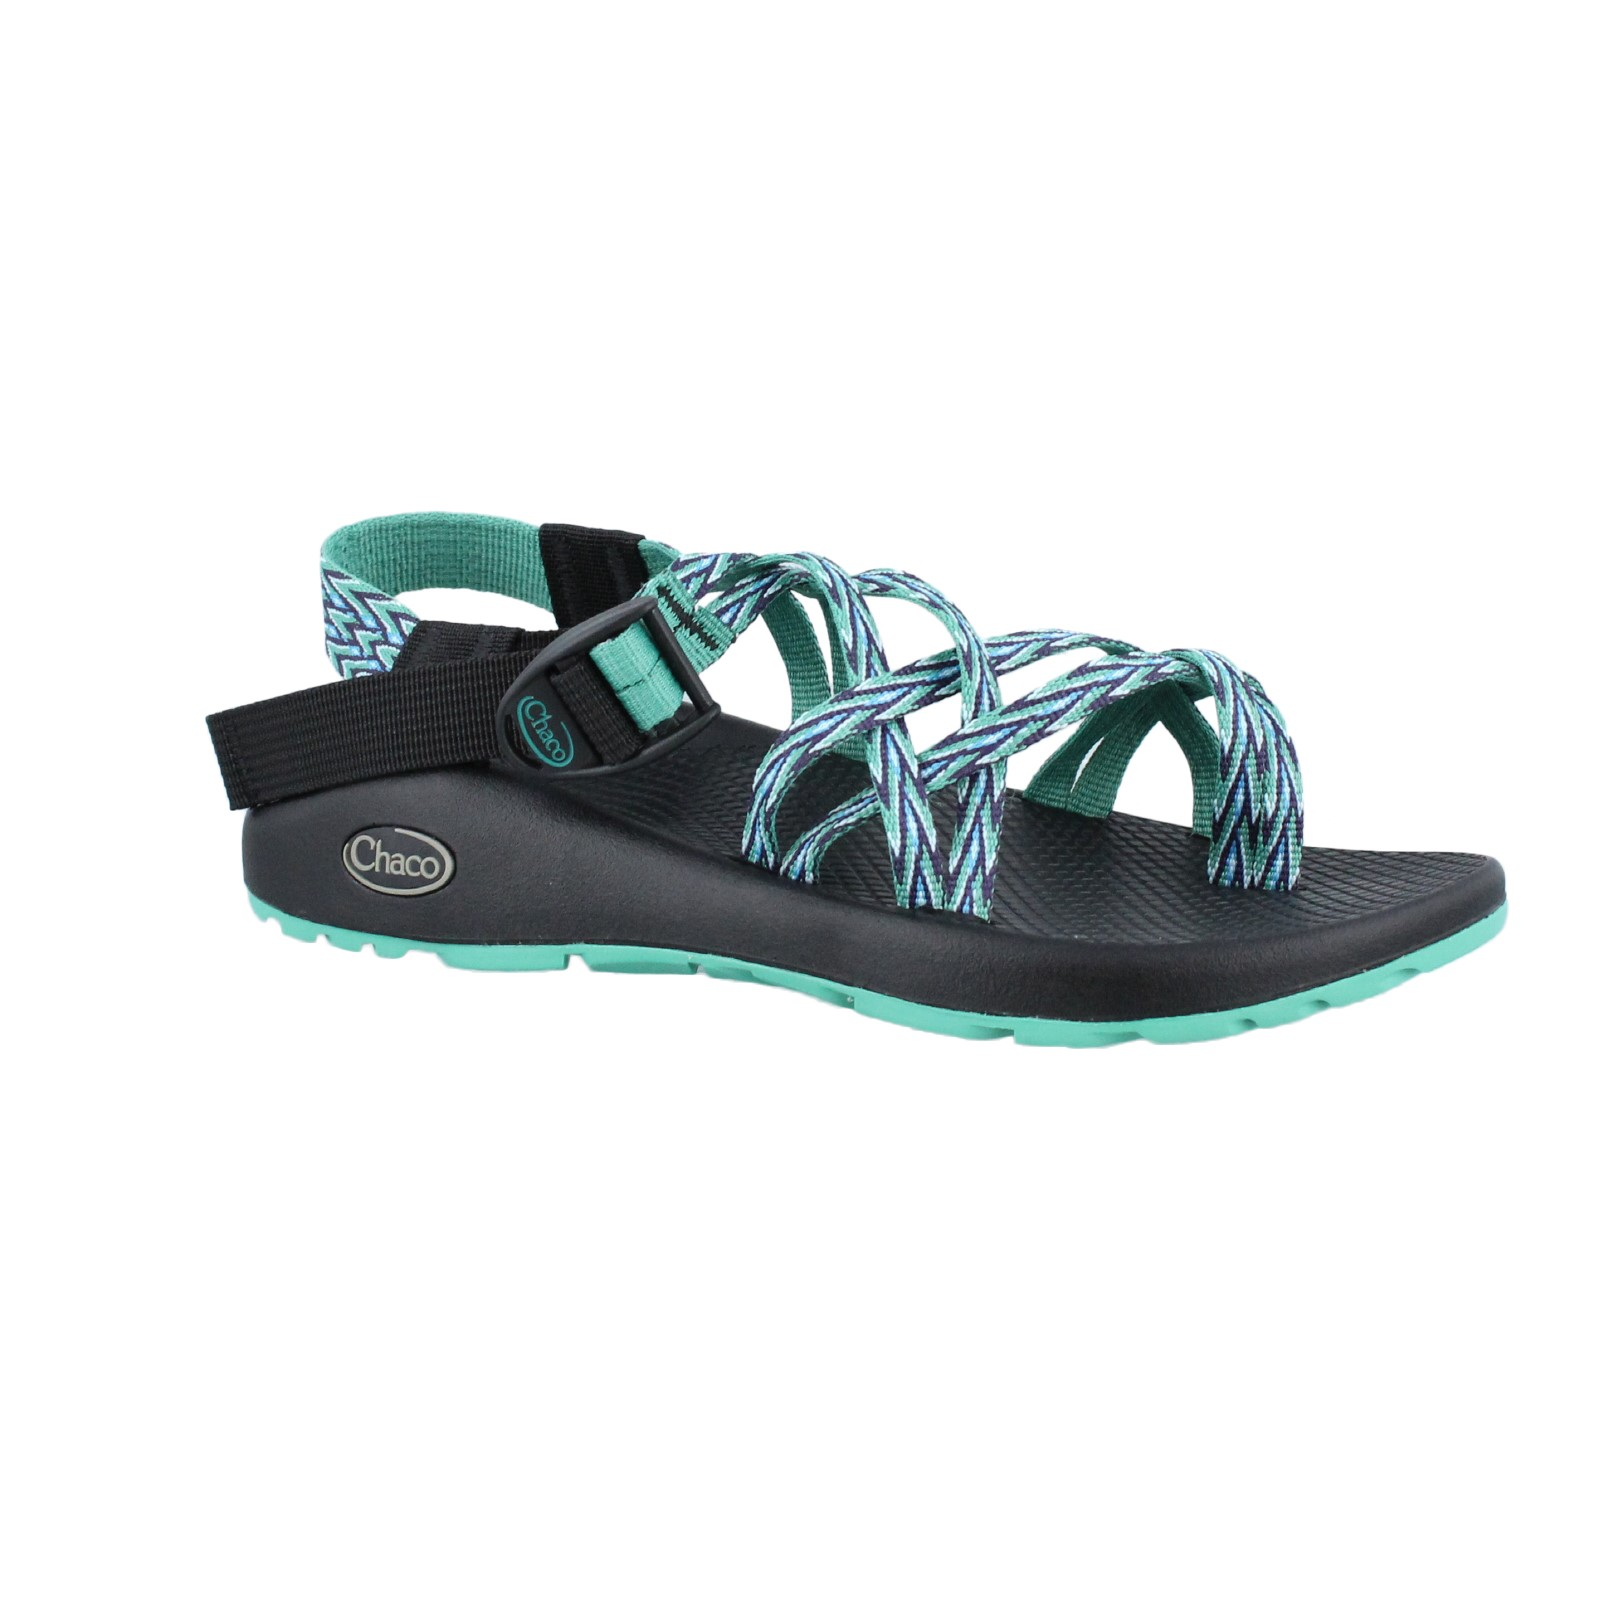 9bd7e1af76f2 Next. add to favorites. Women s CHACO